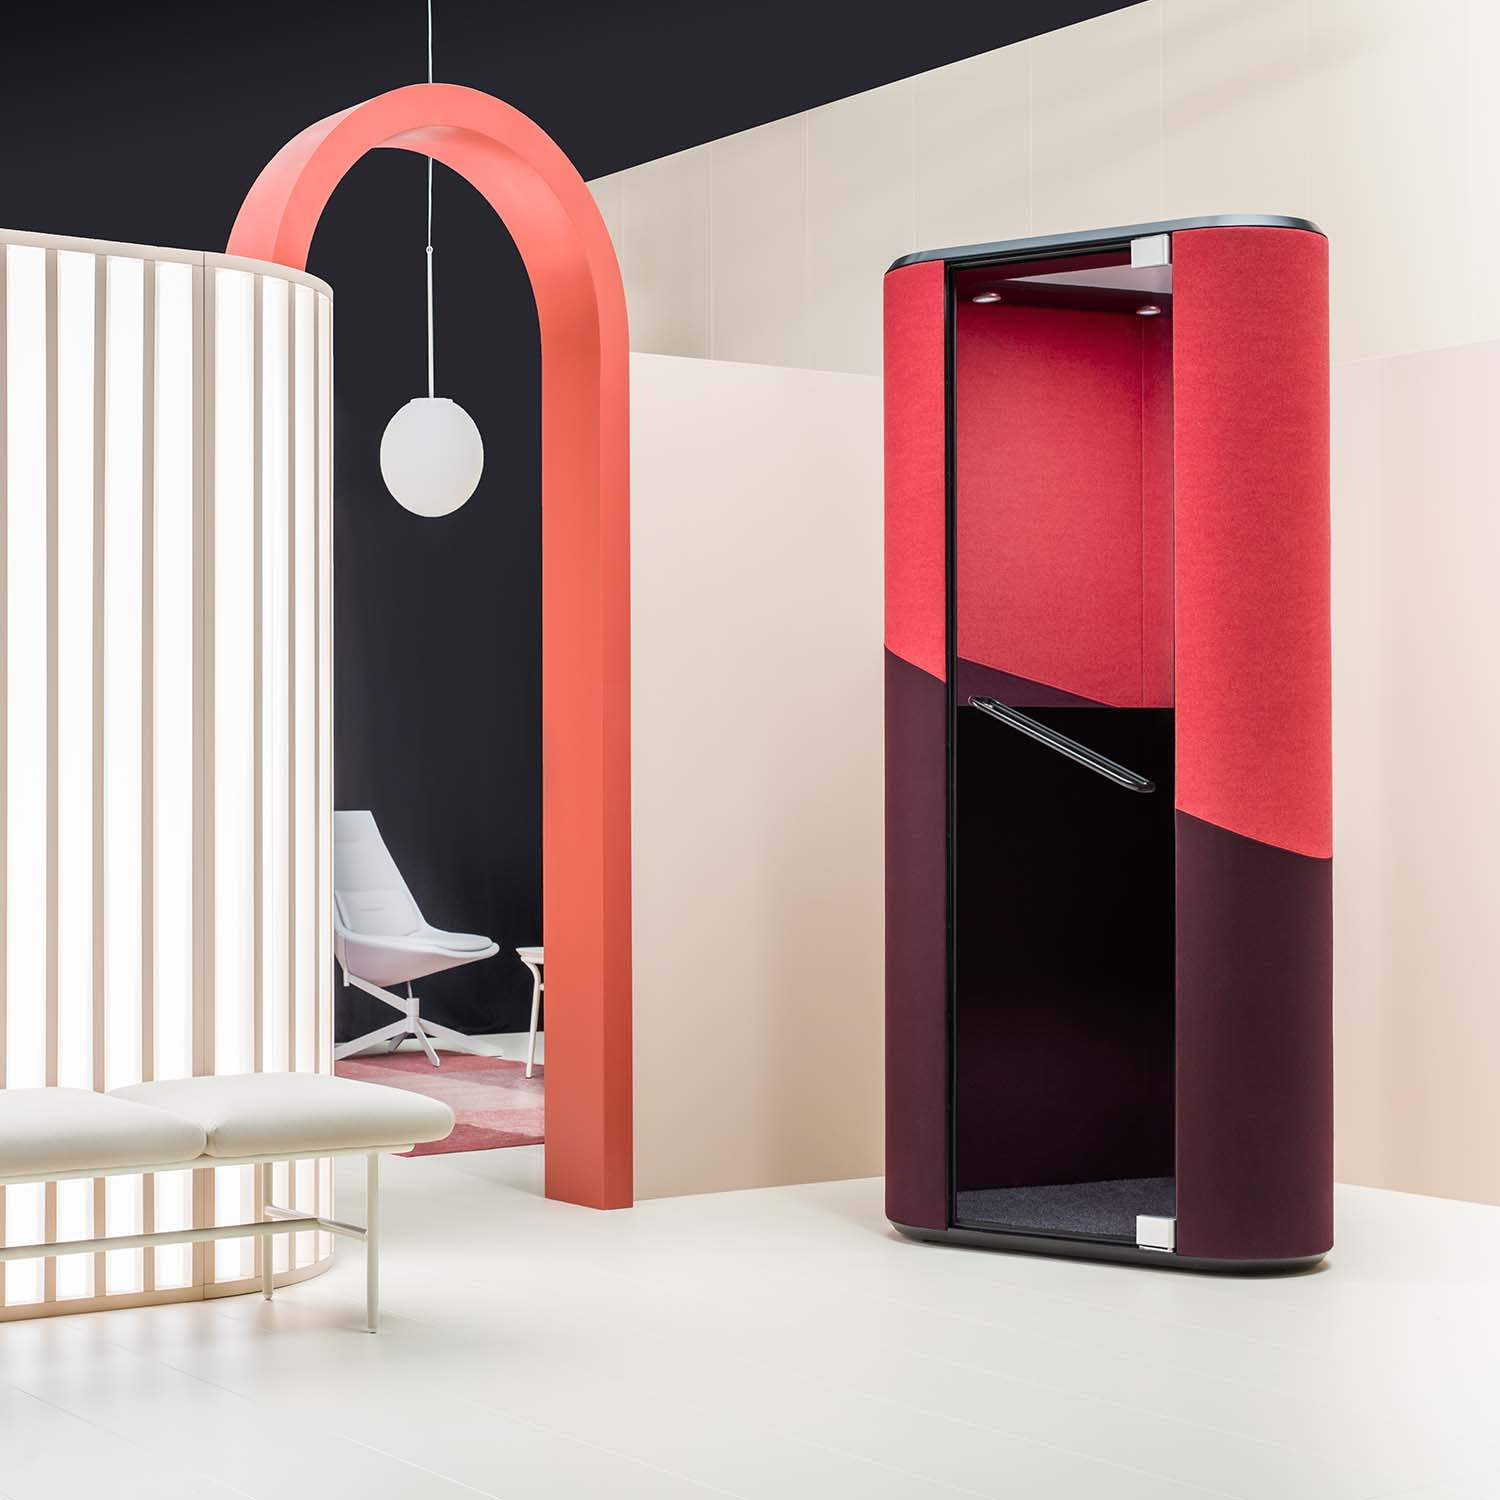 Hana Acoustic Phone Booth in Red And Black